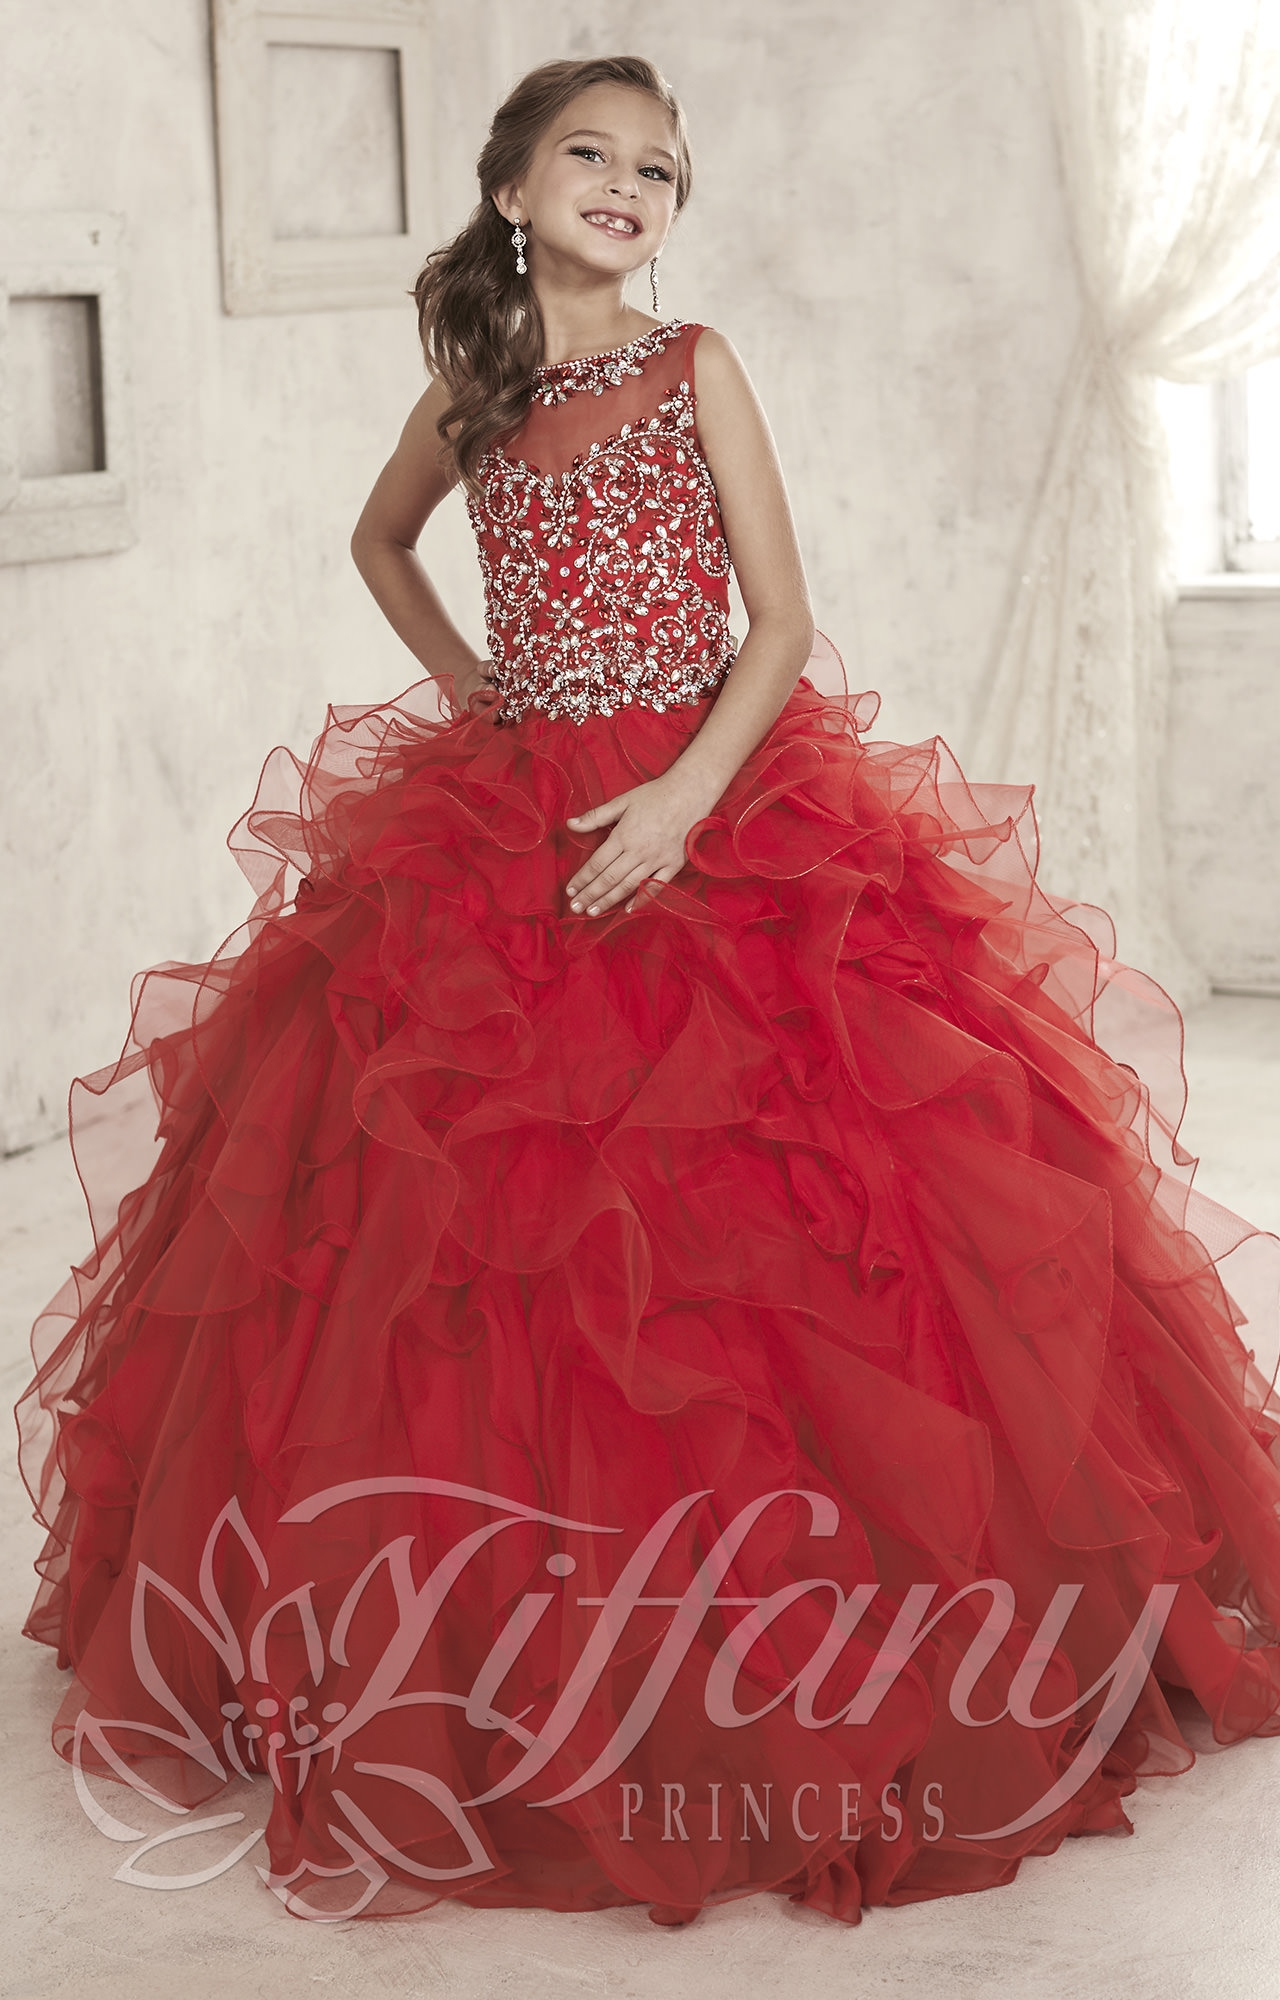 Tiffany Princess 13452 Perfect Princess Dress Prom Dress